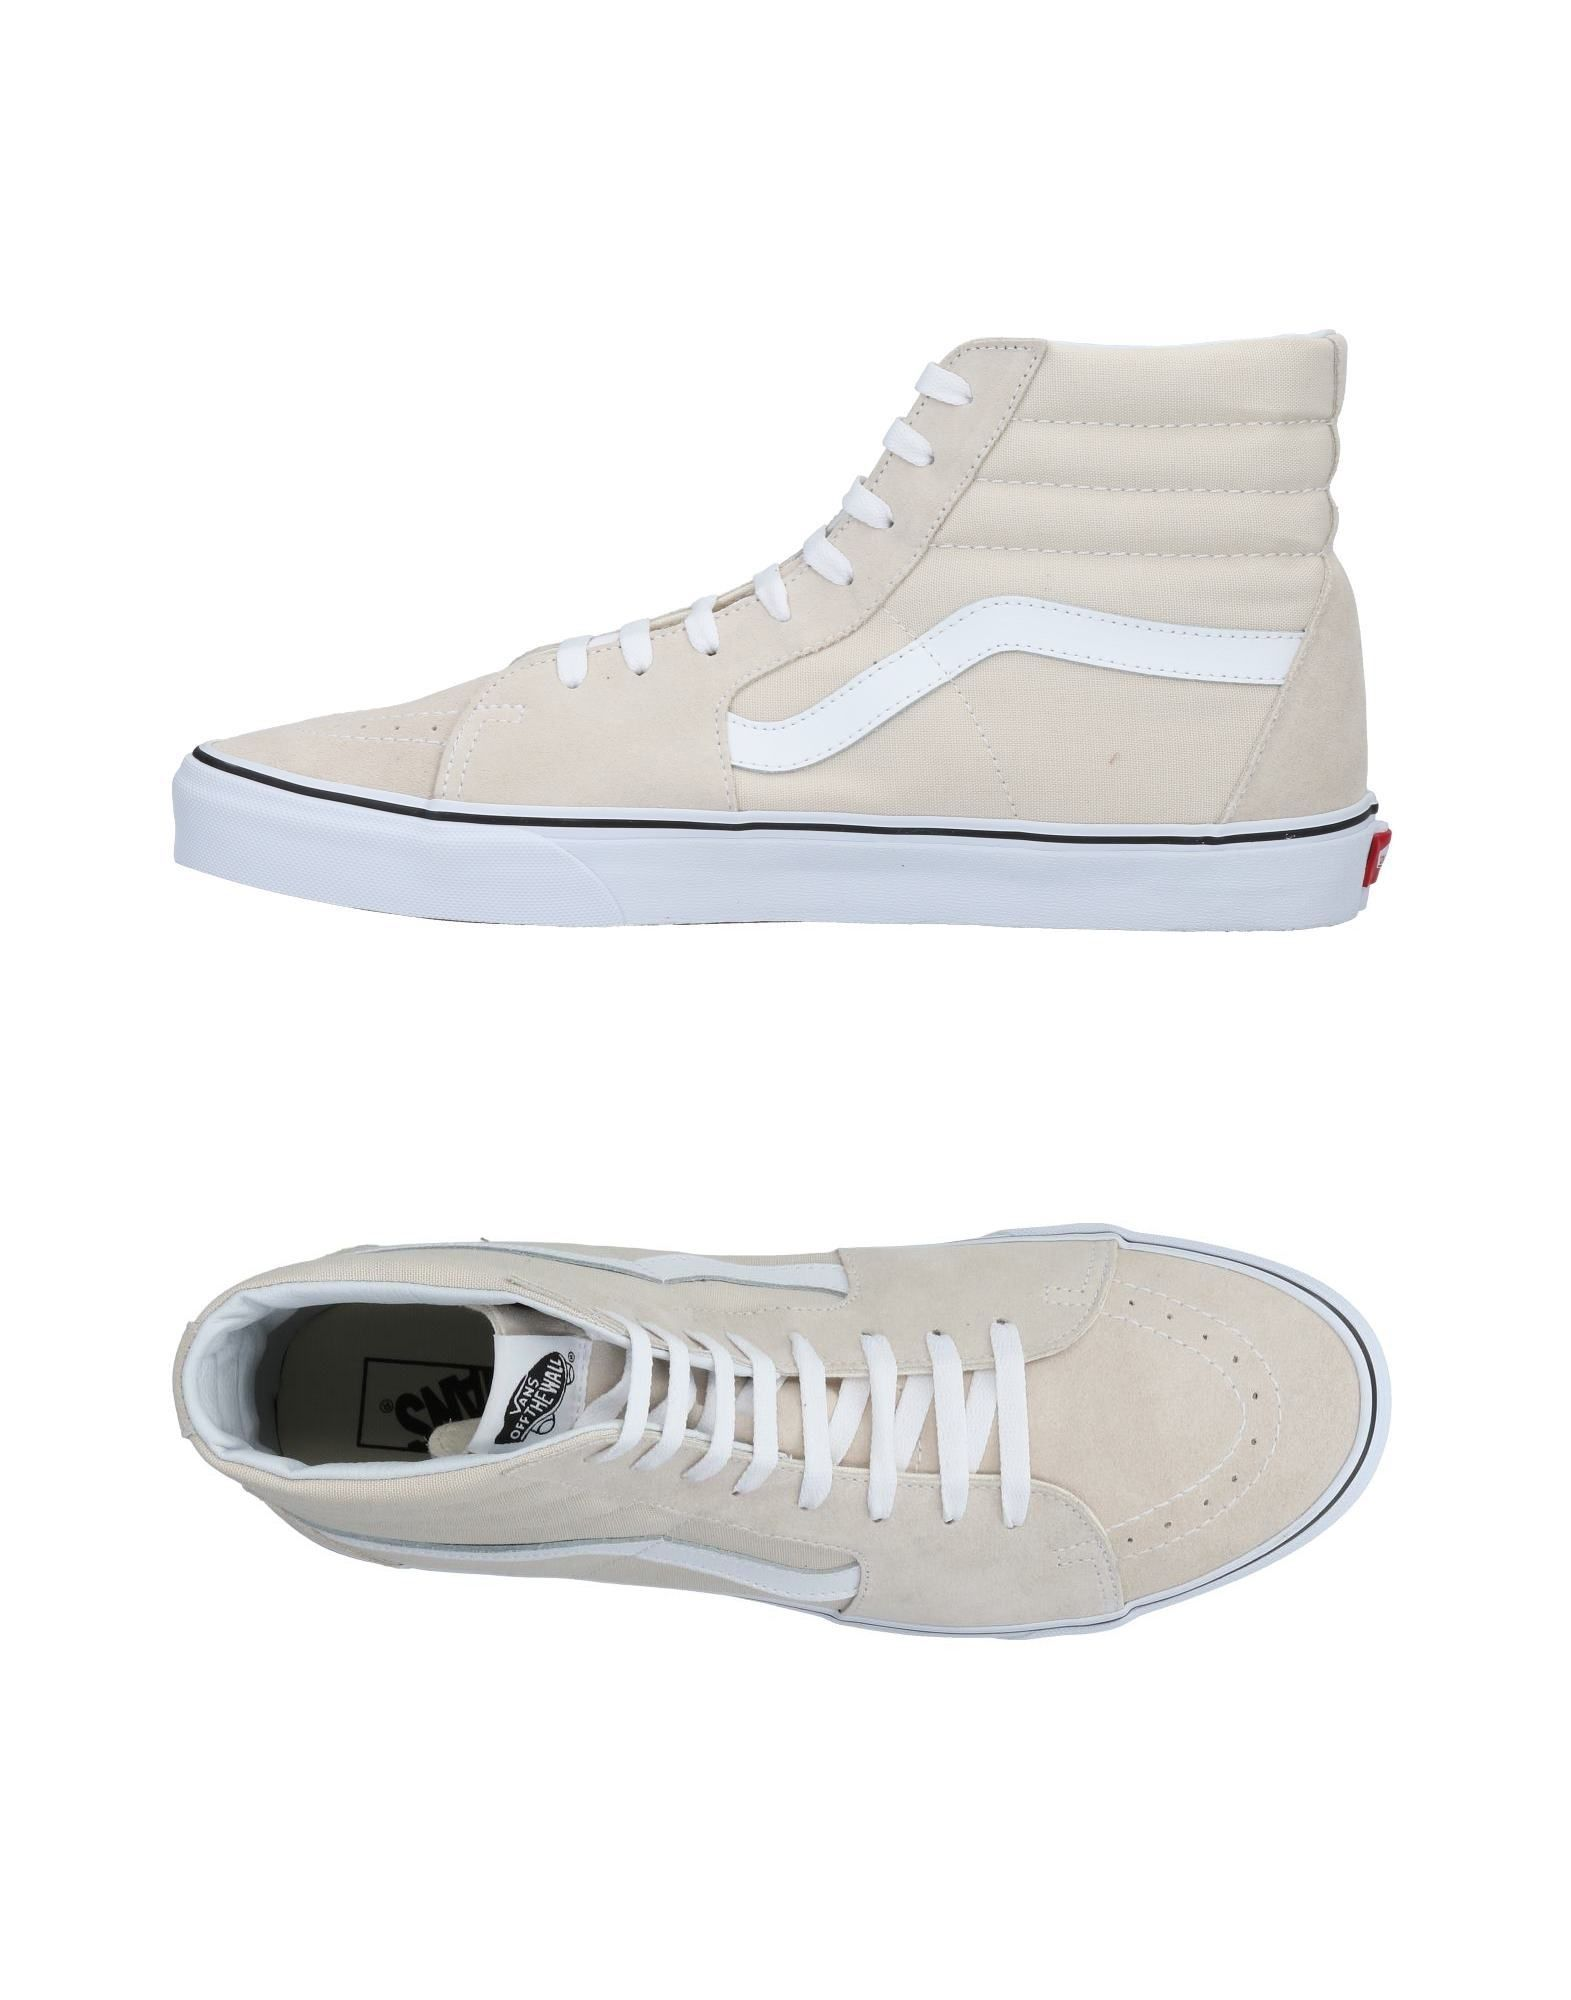 f0f4a68f3a5 VANS ΠΑΠΟΥΤΣΙΑ Χαμηλά sneakers, Ανδρικά sneakers, ΑΝΔΡΑΣ | ΠΑΠΟΥΤΣΙΑ ...